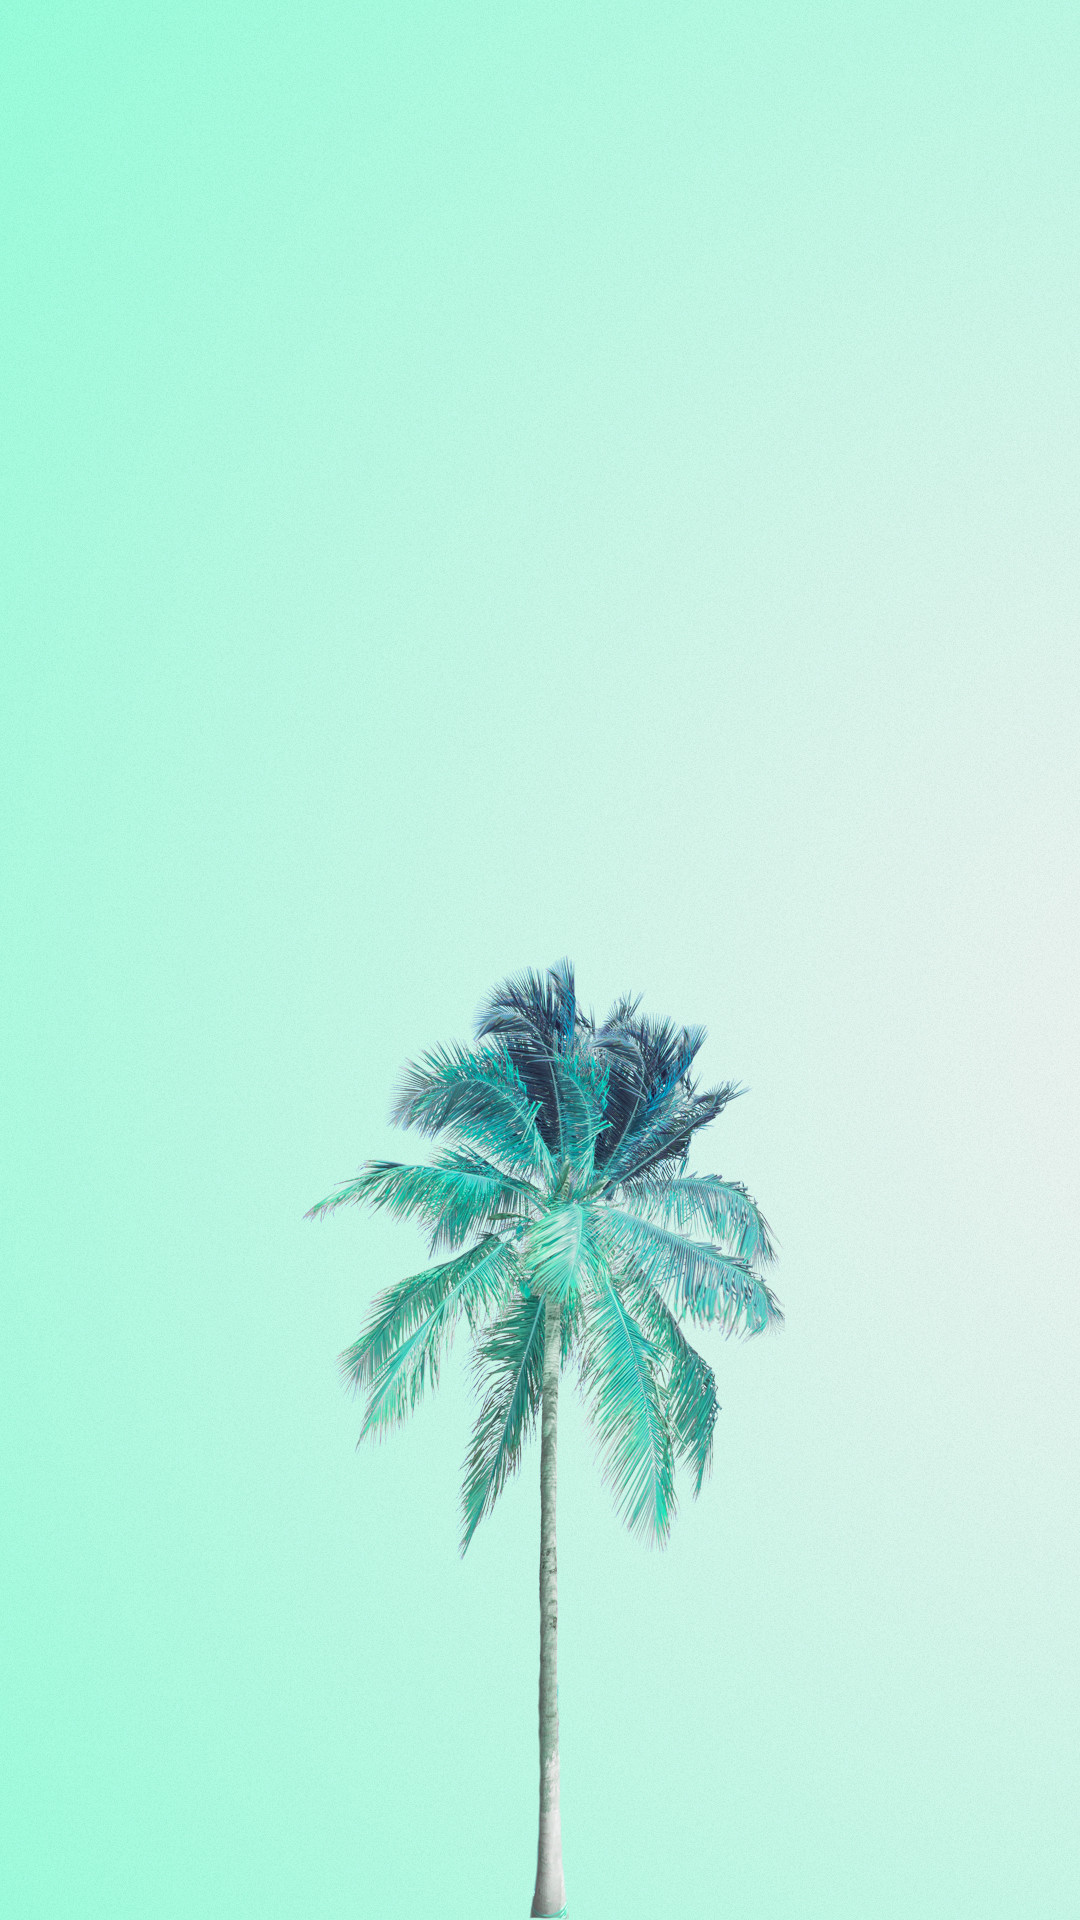 1080x1920 Mint green palm tree iphone wallpaper phone background lock screen